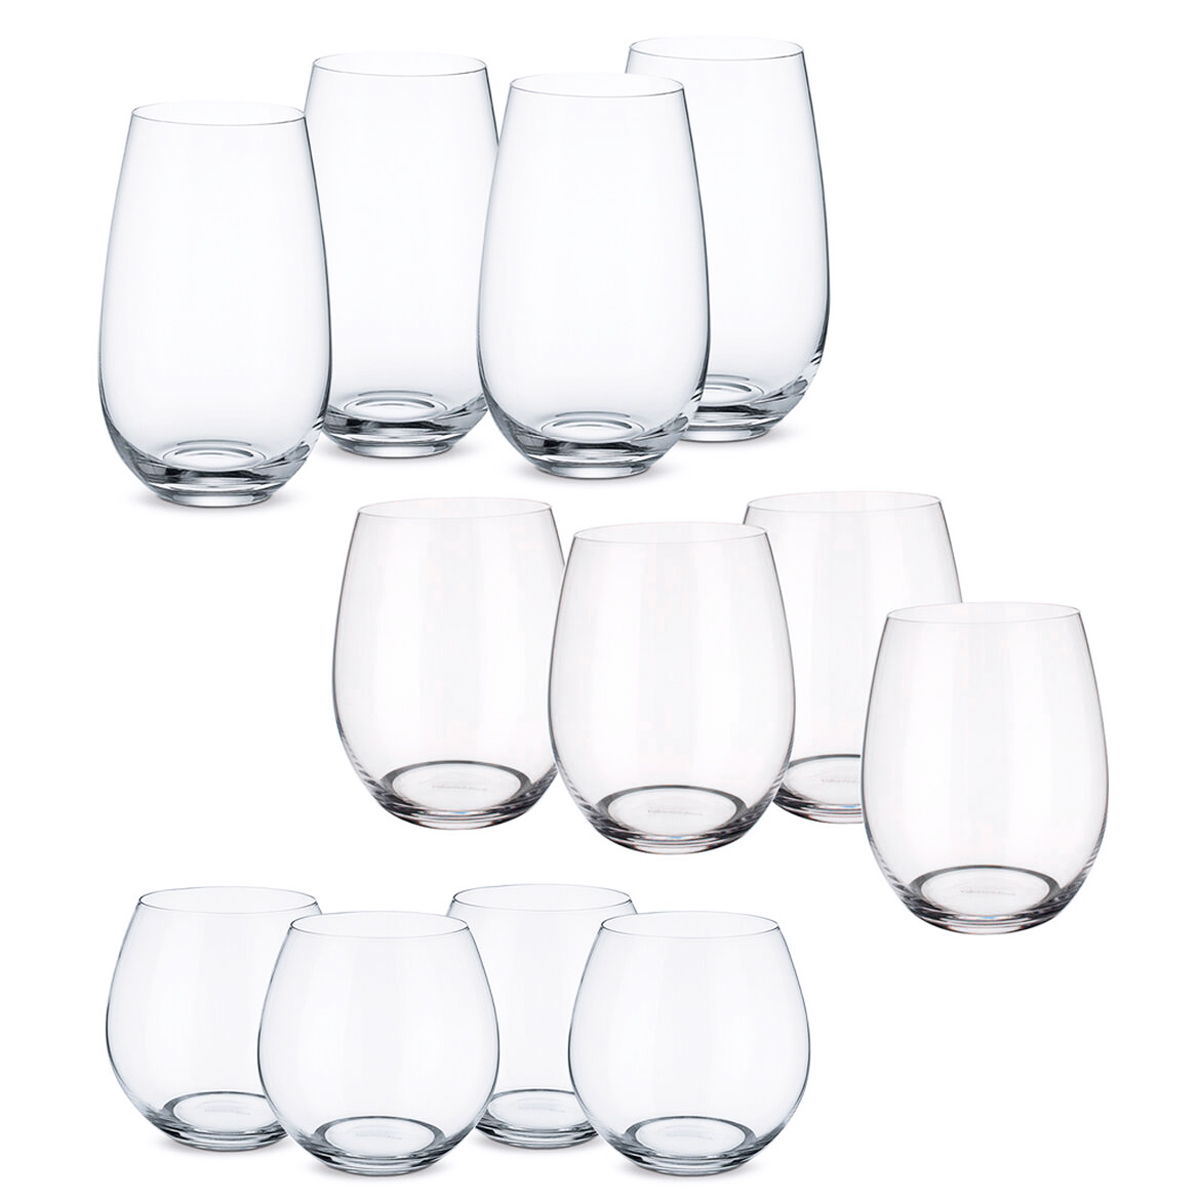 Villeroy and Boch Entree 12 Piece Stemless Wine Glasses Set